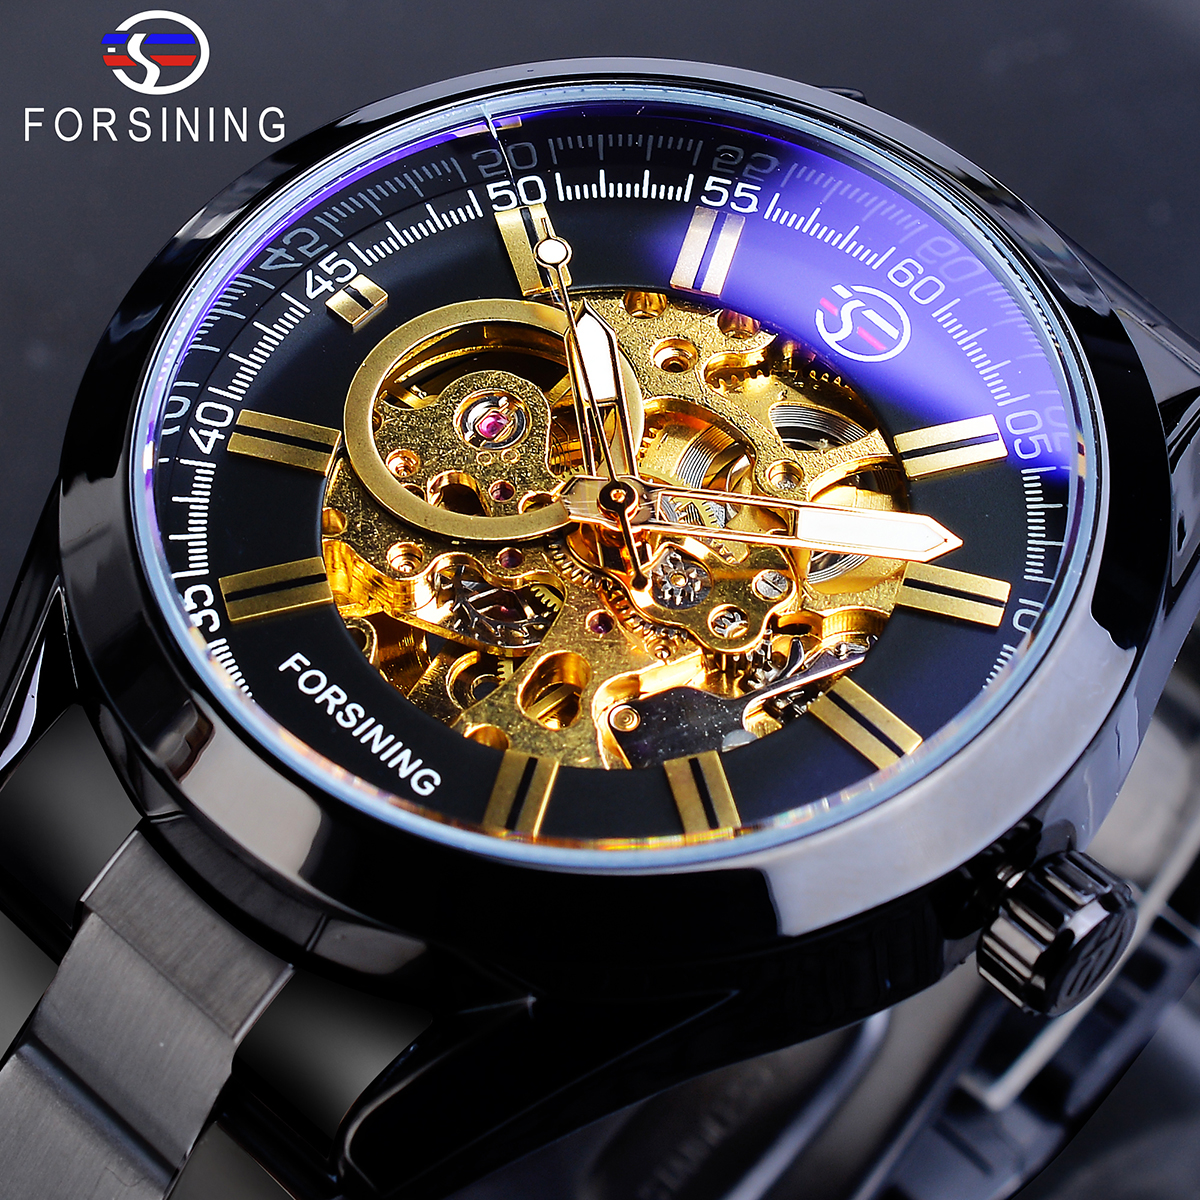 Forsining Black Mens Mechanical Watches Automatic Skeleton Steampunk Stainless Steel Strap Military Sport Wristwatch Homme Saati|Mechanical Watches| |  - title=